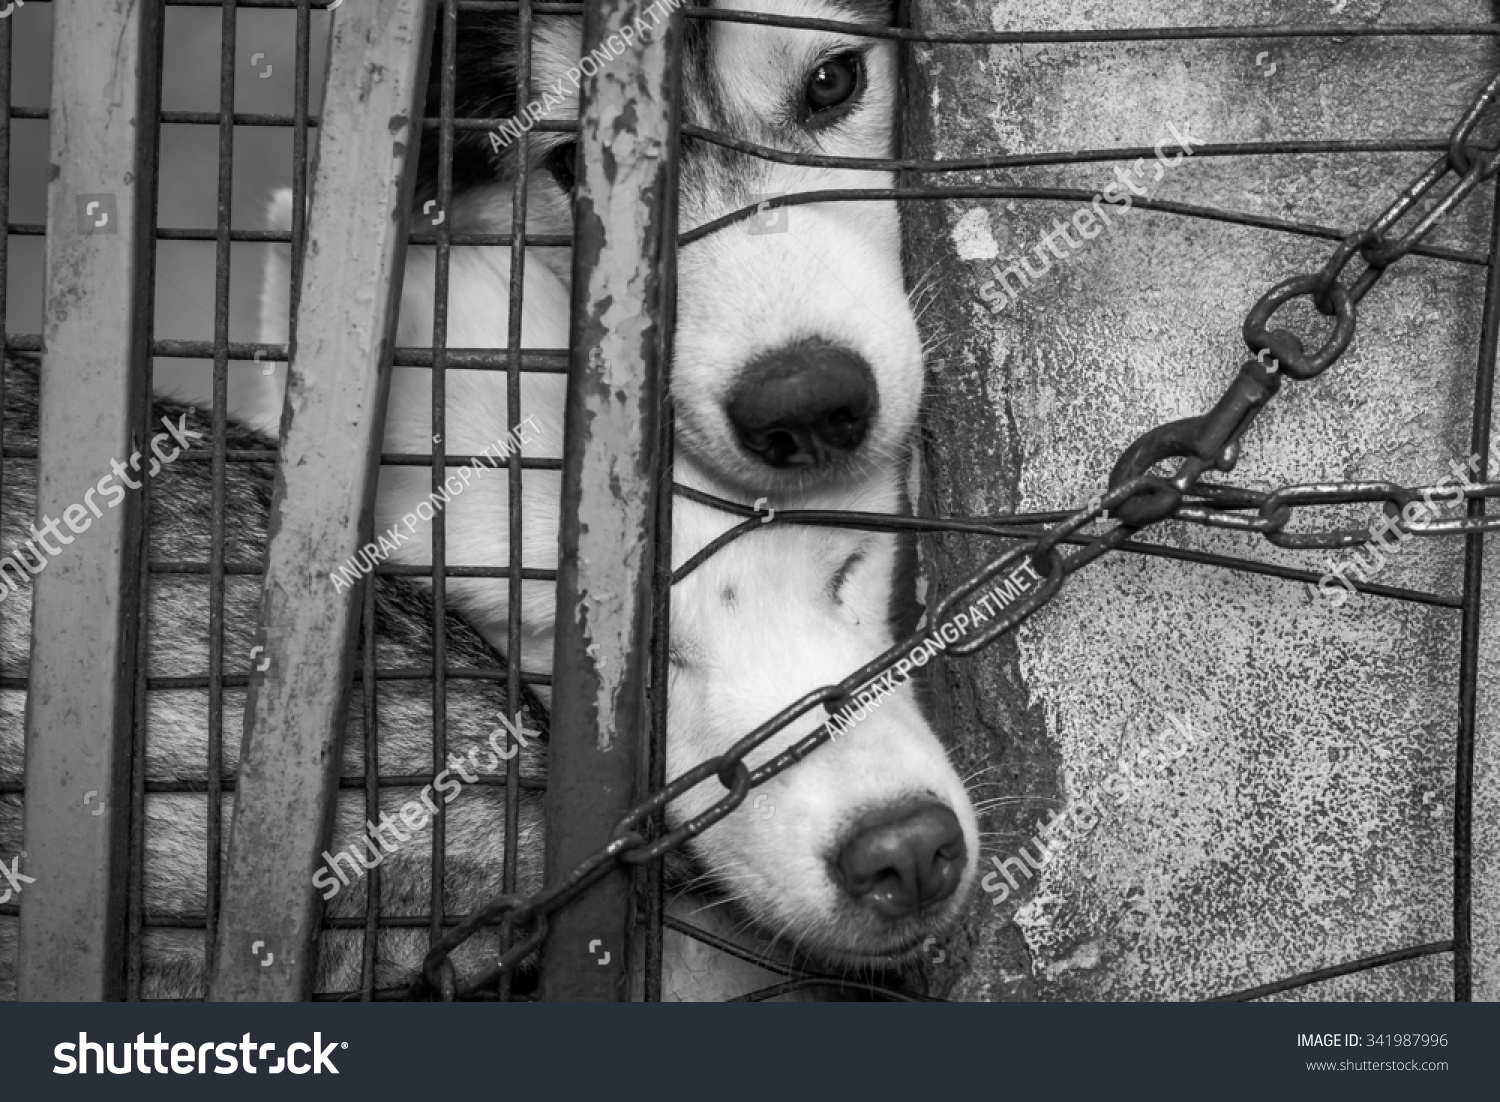 Sad dogs in cages black and white